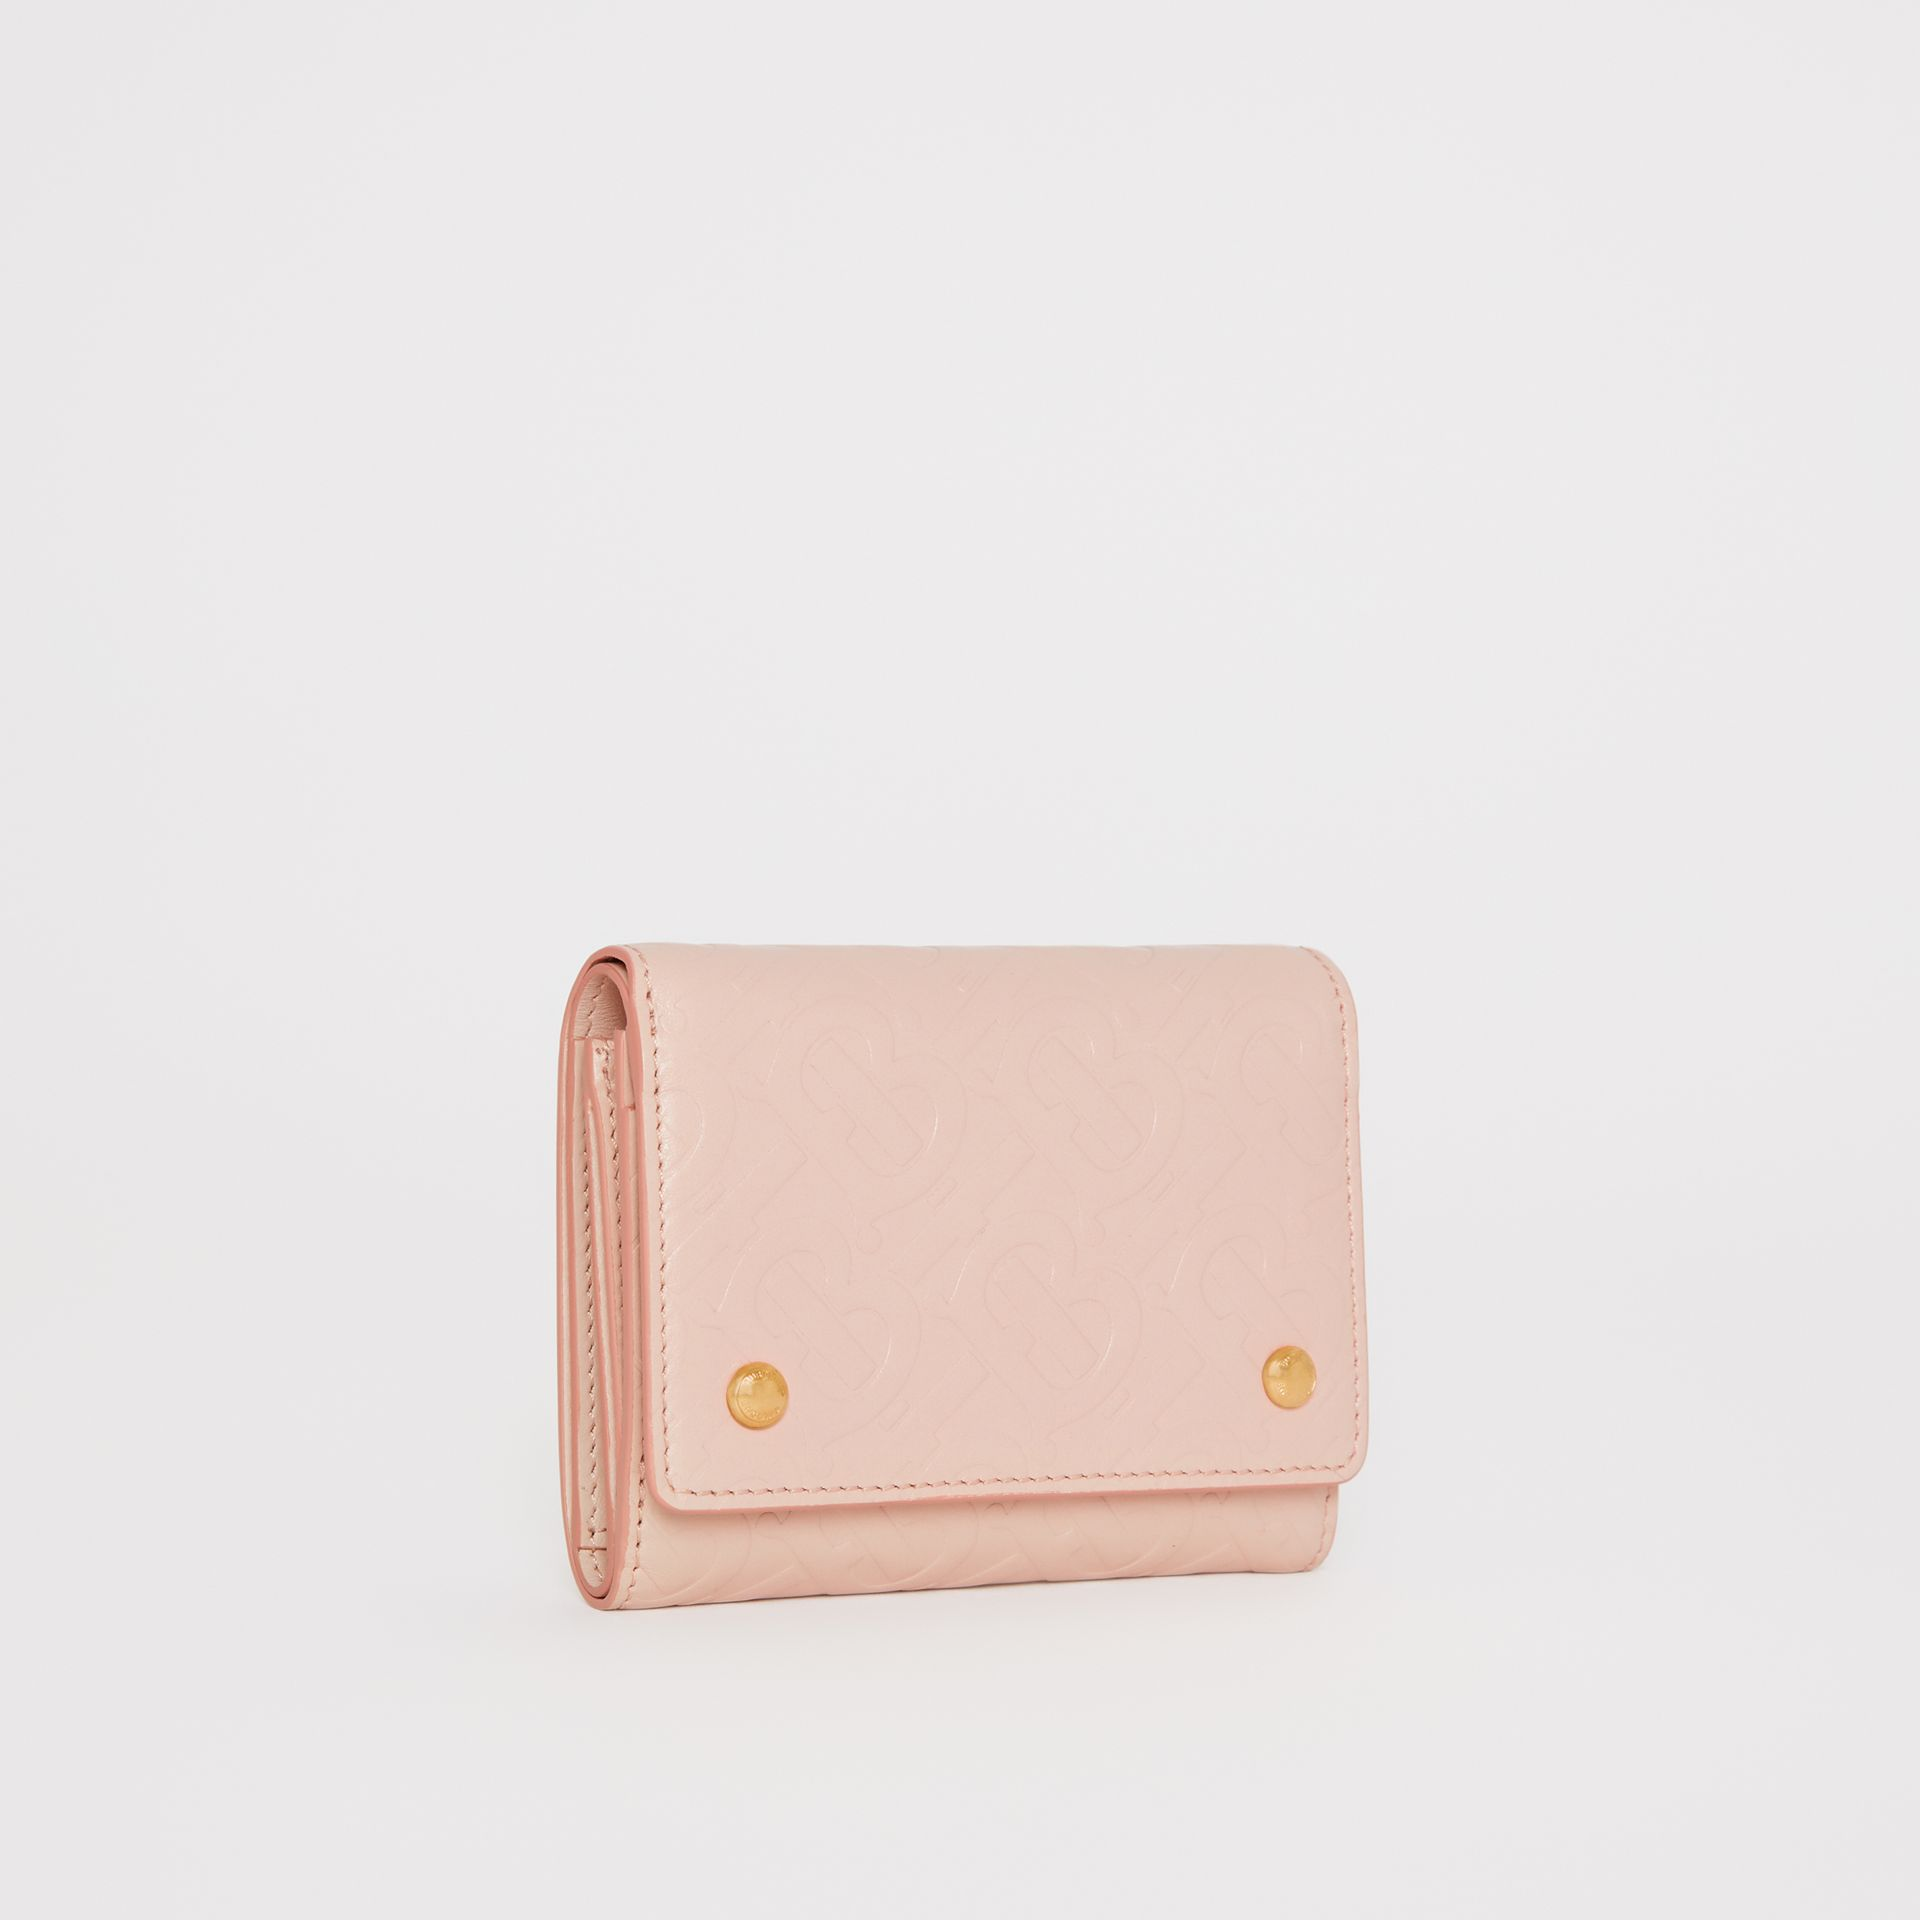 Small Monogram Leather Folding Wallet in Rose Beige - Women | Burberry - gallery image 3